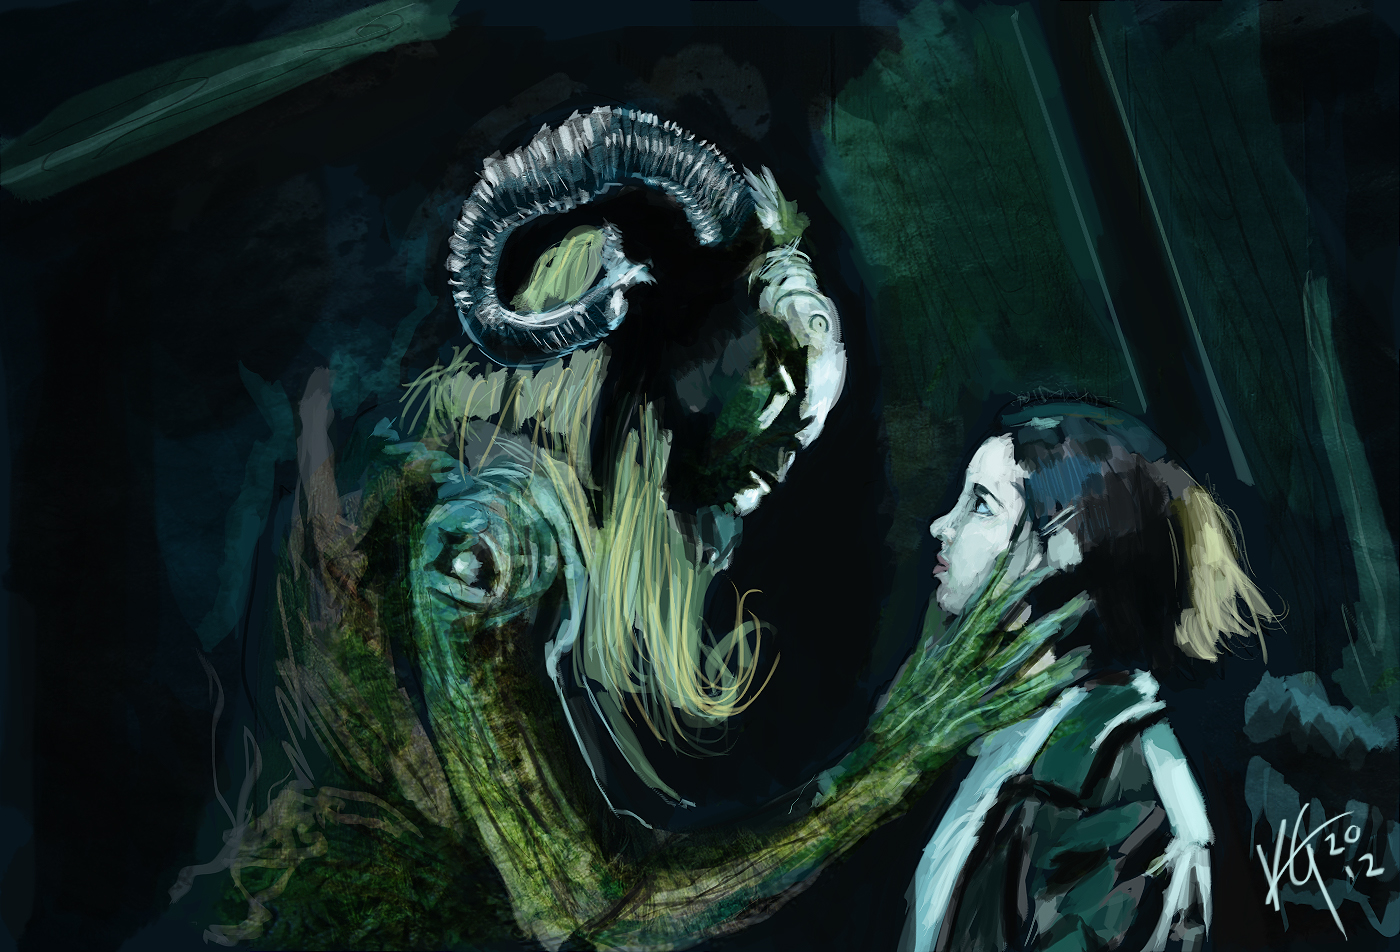 pans_labyrinth_by_kxg_witcher-d50v91b.jp